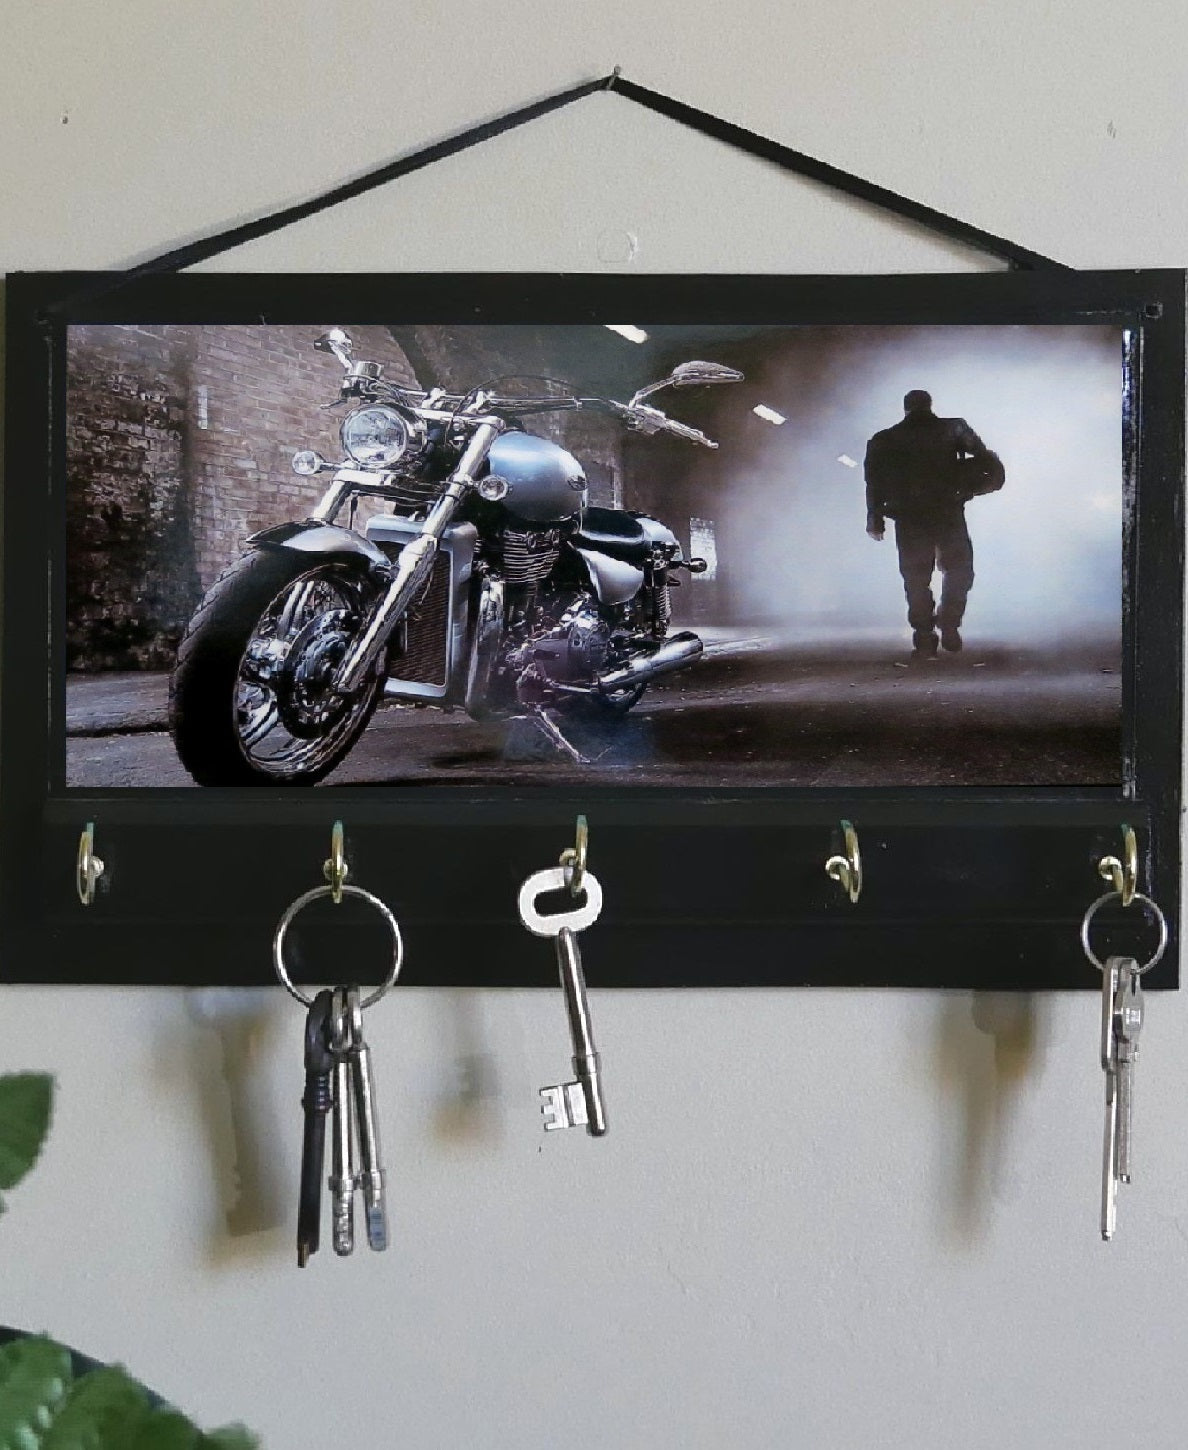 Harley-Davidson-Motor-Bike-Key-Rack-Holder-Nchanted-Gifts